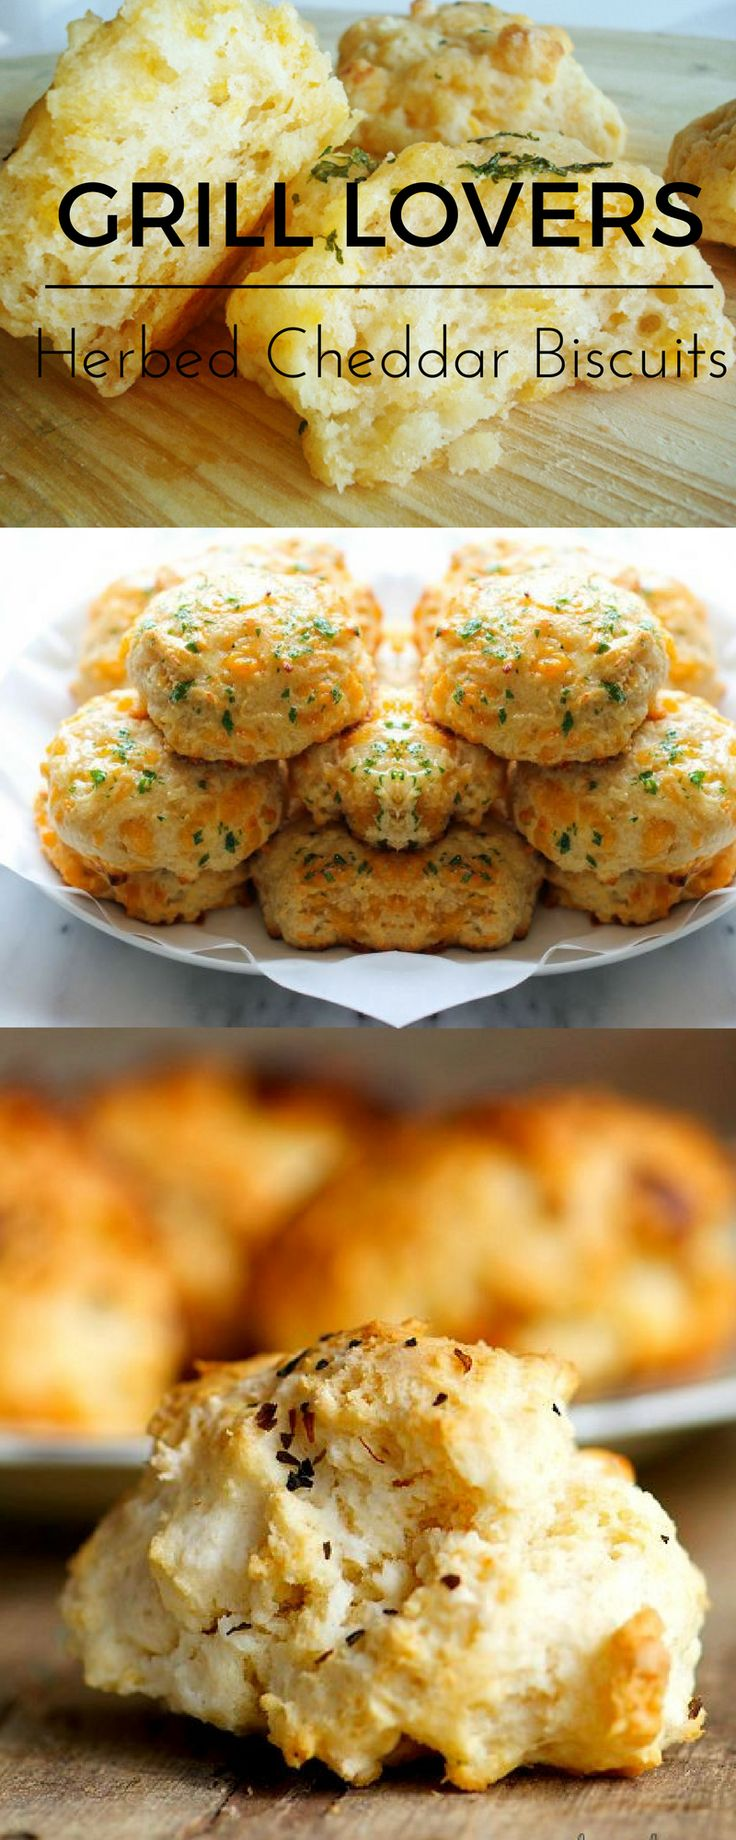 Grill Lovers' Amazing Herbed Cheddar Biscuits Recipe   #recipes #foodporn #foodie